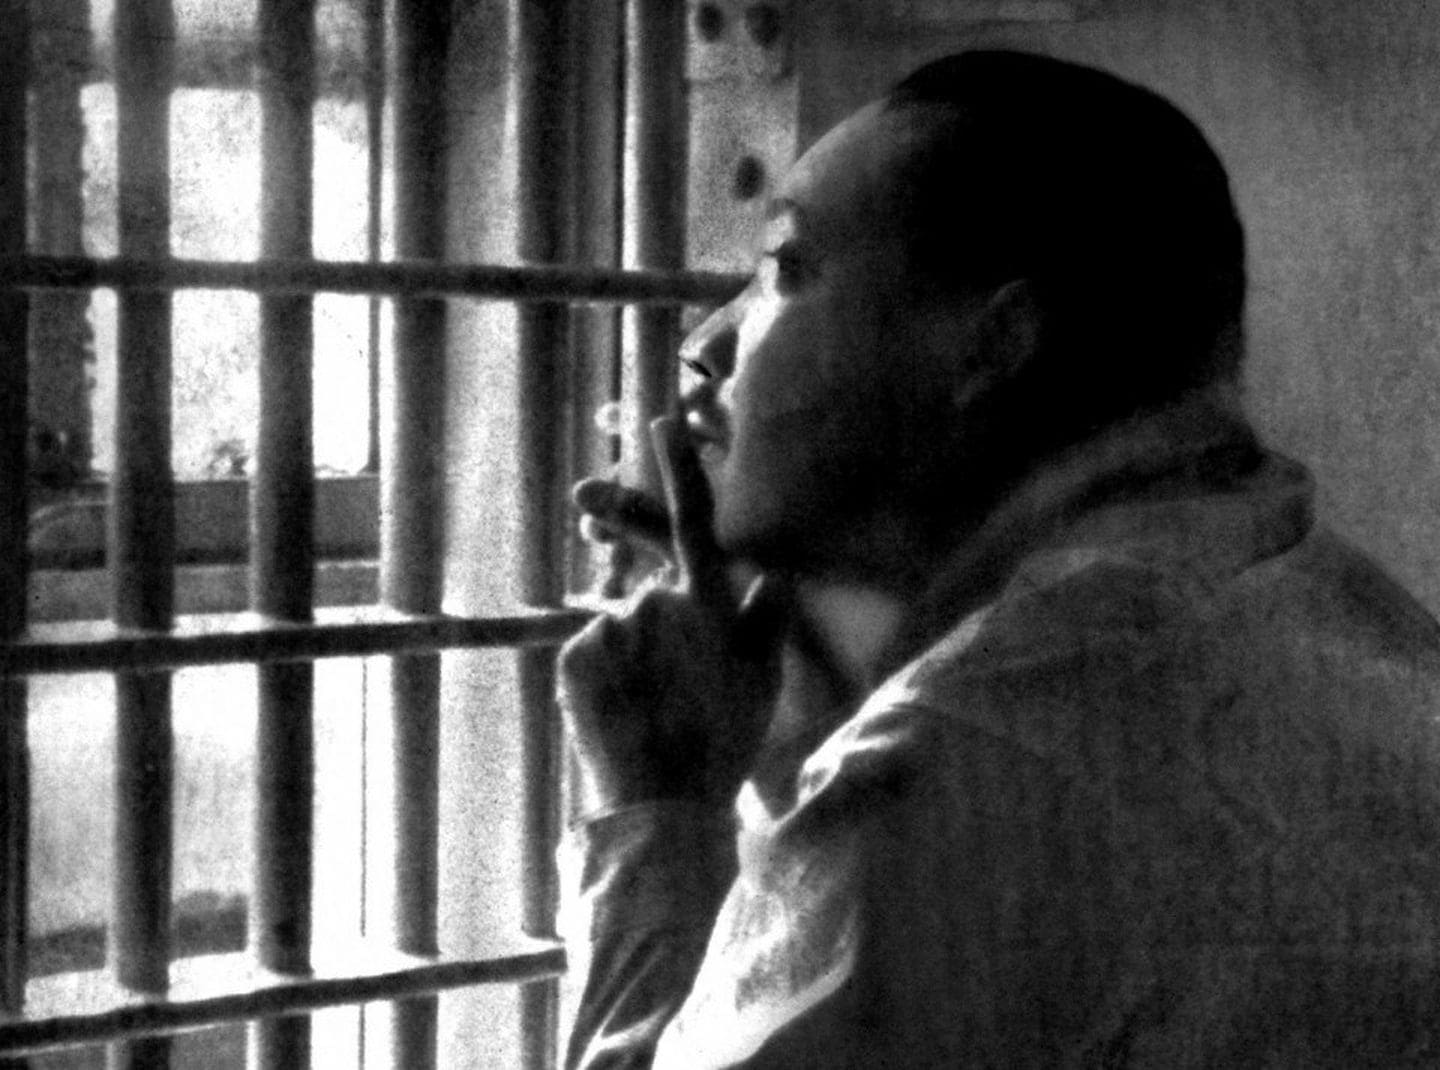 Martin Luther King, Jr.: Letter from Birmingham Jail